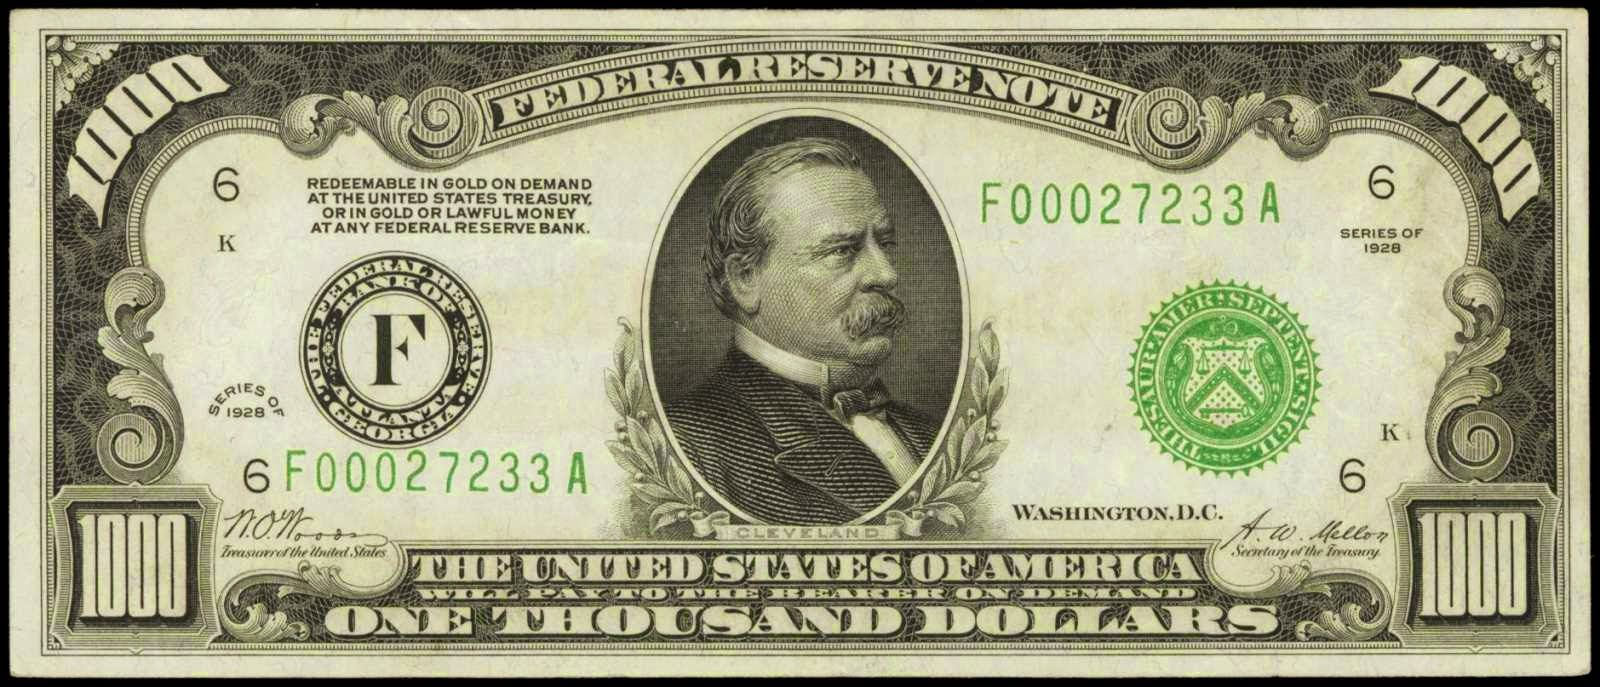 1928 One Thousand Dollar Federal Reserve Note. F - Bank of Atlanta Portrait of Grover Cleveland (22nd & 24th U.S. President)